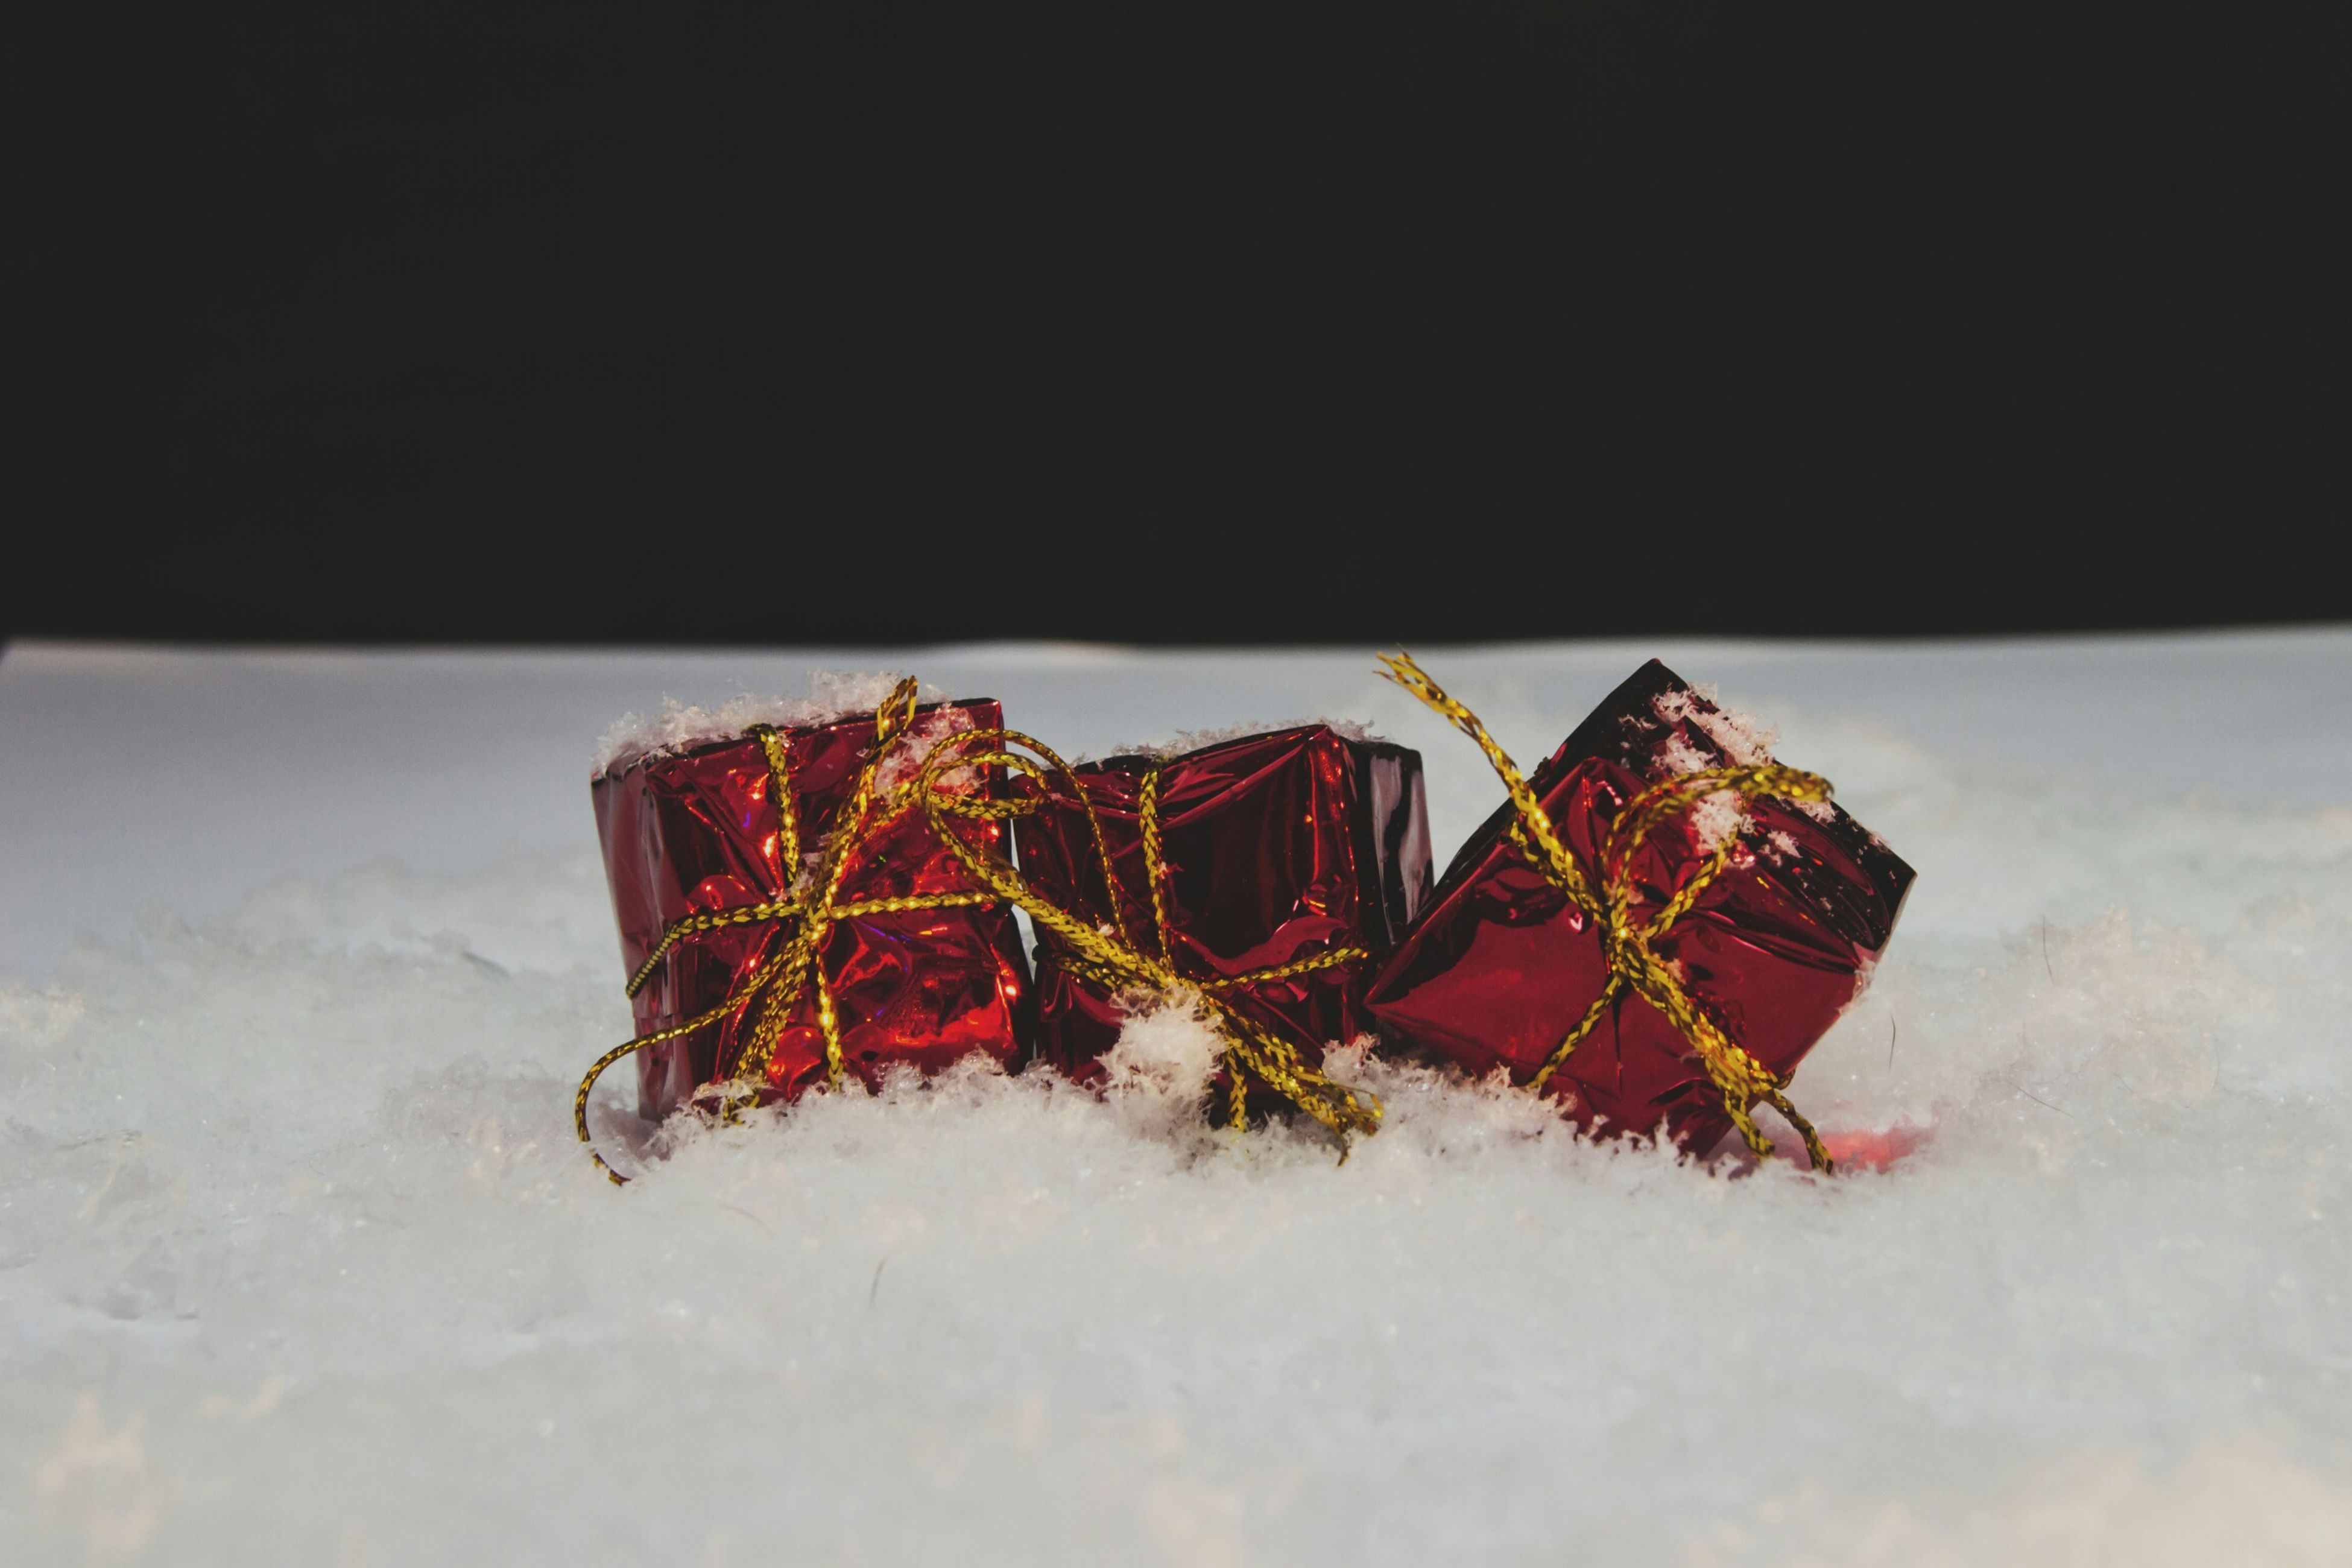 Christmas gift box with golden ribbonWith Gogift Box With Goldenchristmas Decorations Awesome_shots My Best Photo 2015 Nopeople From My Point Of View Taking Photos EyeEm Best Shots Chistmas Christmas Tree Decorations OpenEdit EyeEmBestPics Check This Out Christmastime Snow Snowing Holidays Follow Friday Christmas Time Christmas Spirit Gift Presents Box Christmas Gifts Ribbon